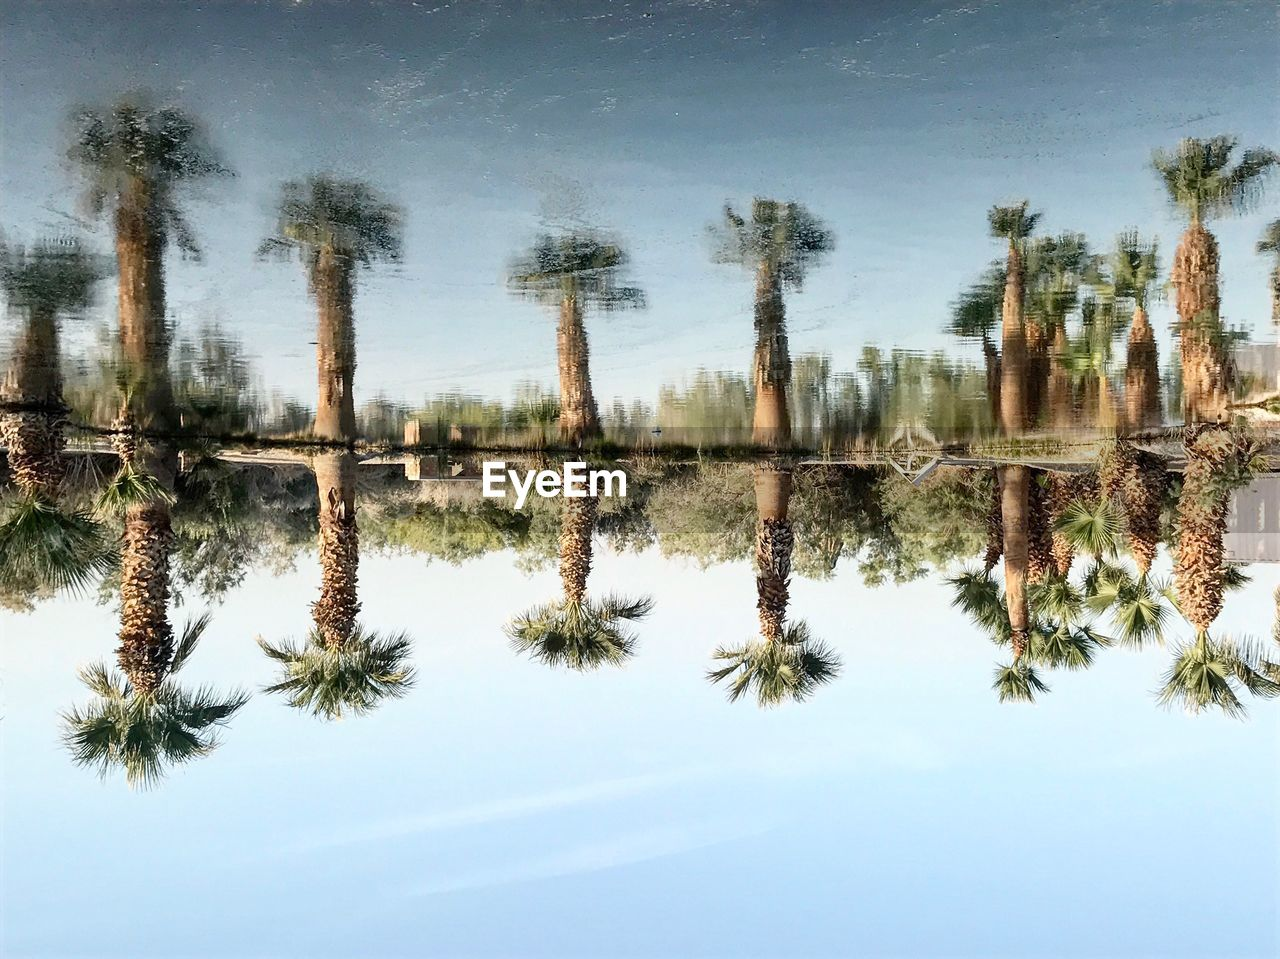 no people, tranquility, reflection, nature, tree, growth, day, sky, water, tranquil scene, outdoors, beauty in nature, scenics, plant, palm tree, close-up